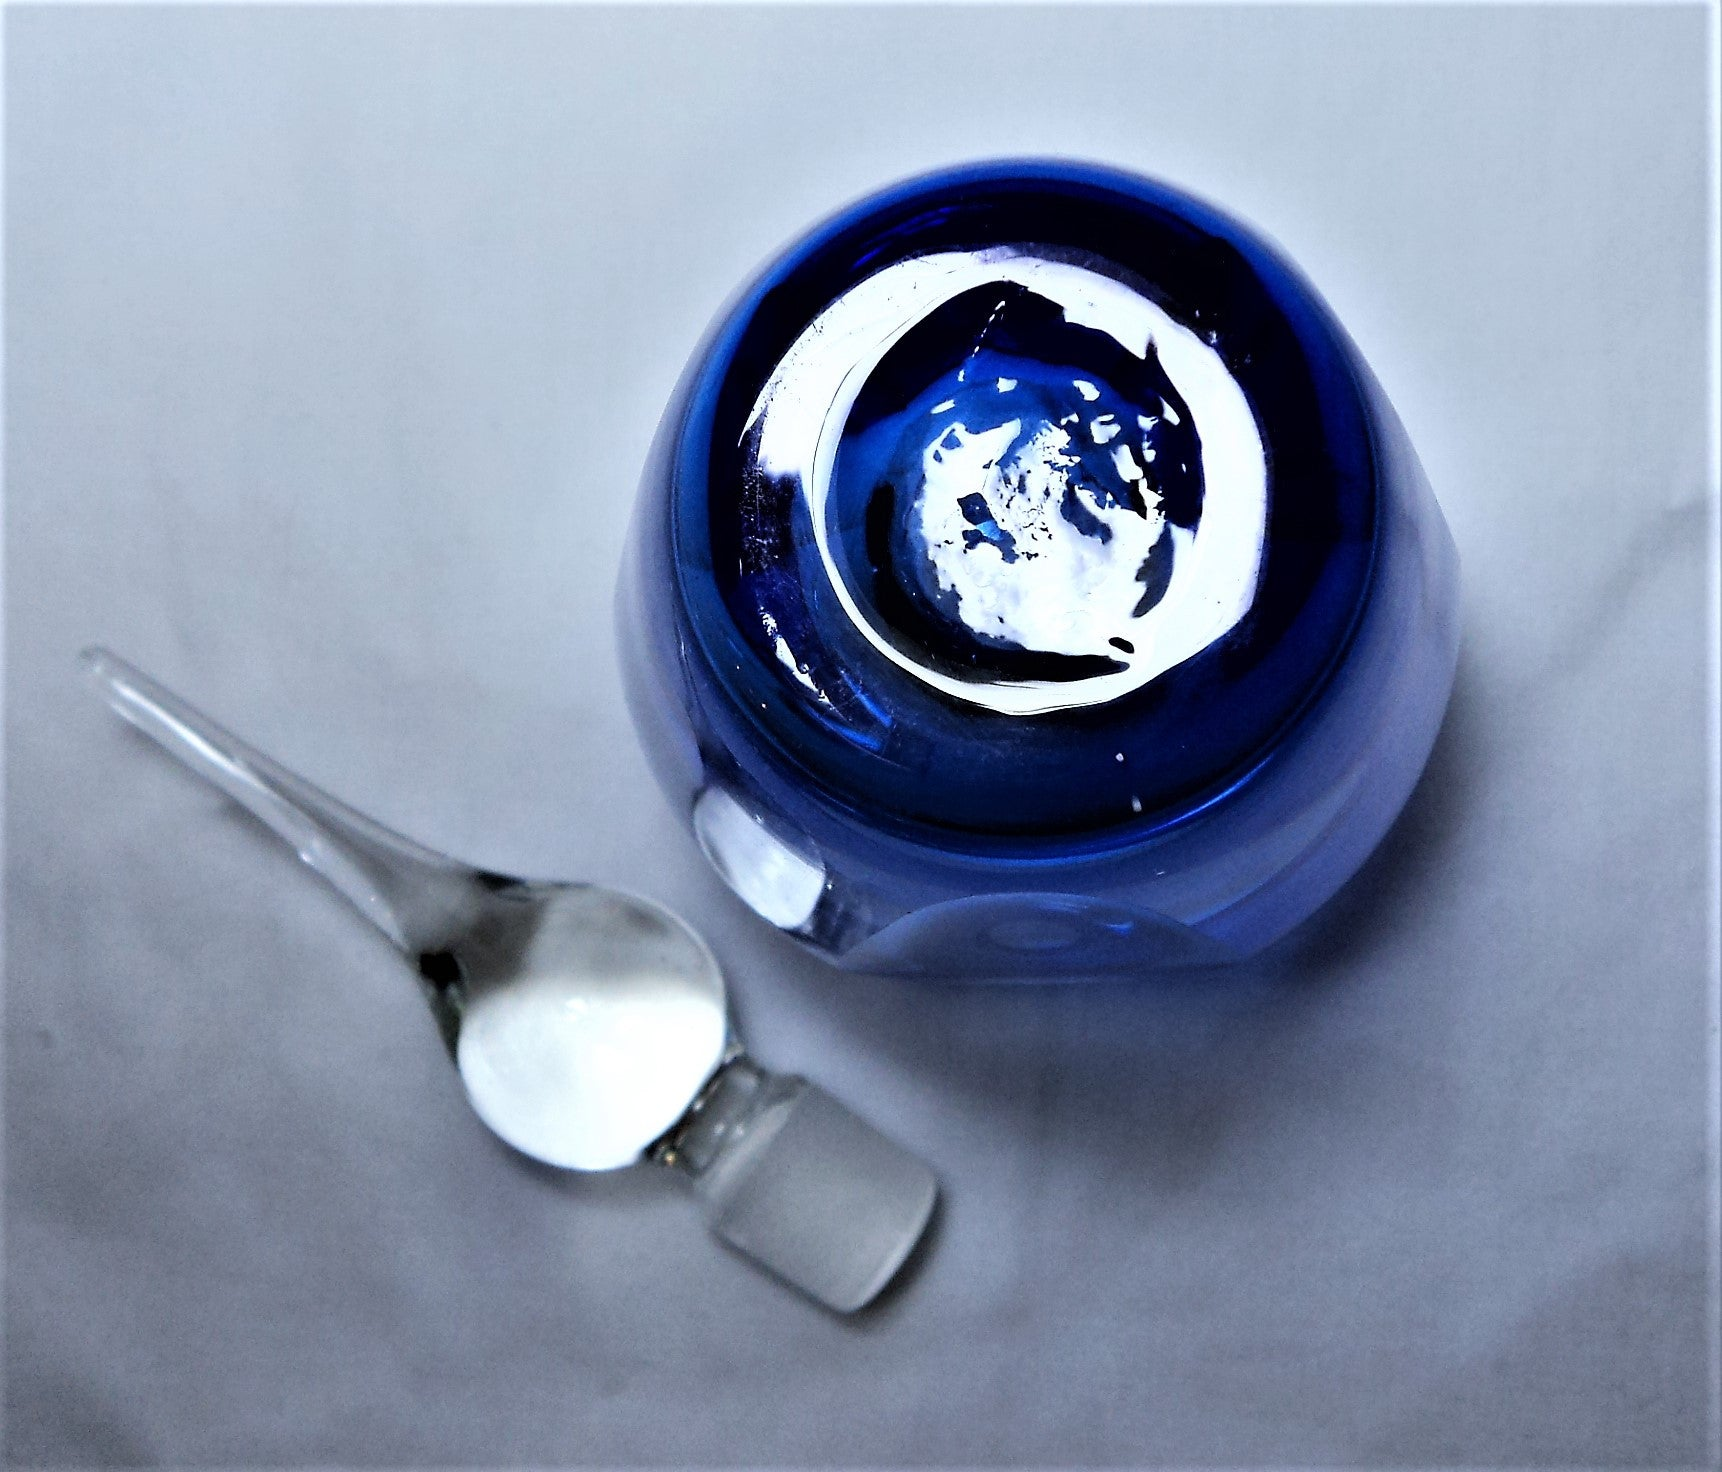 Cobalt Blue Sommerso Perfume Bottle